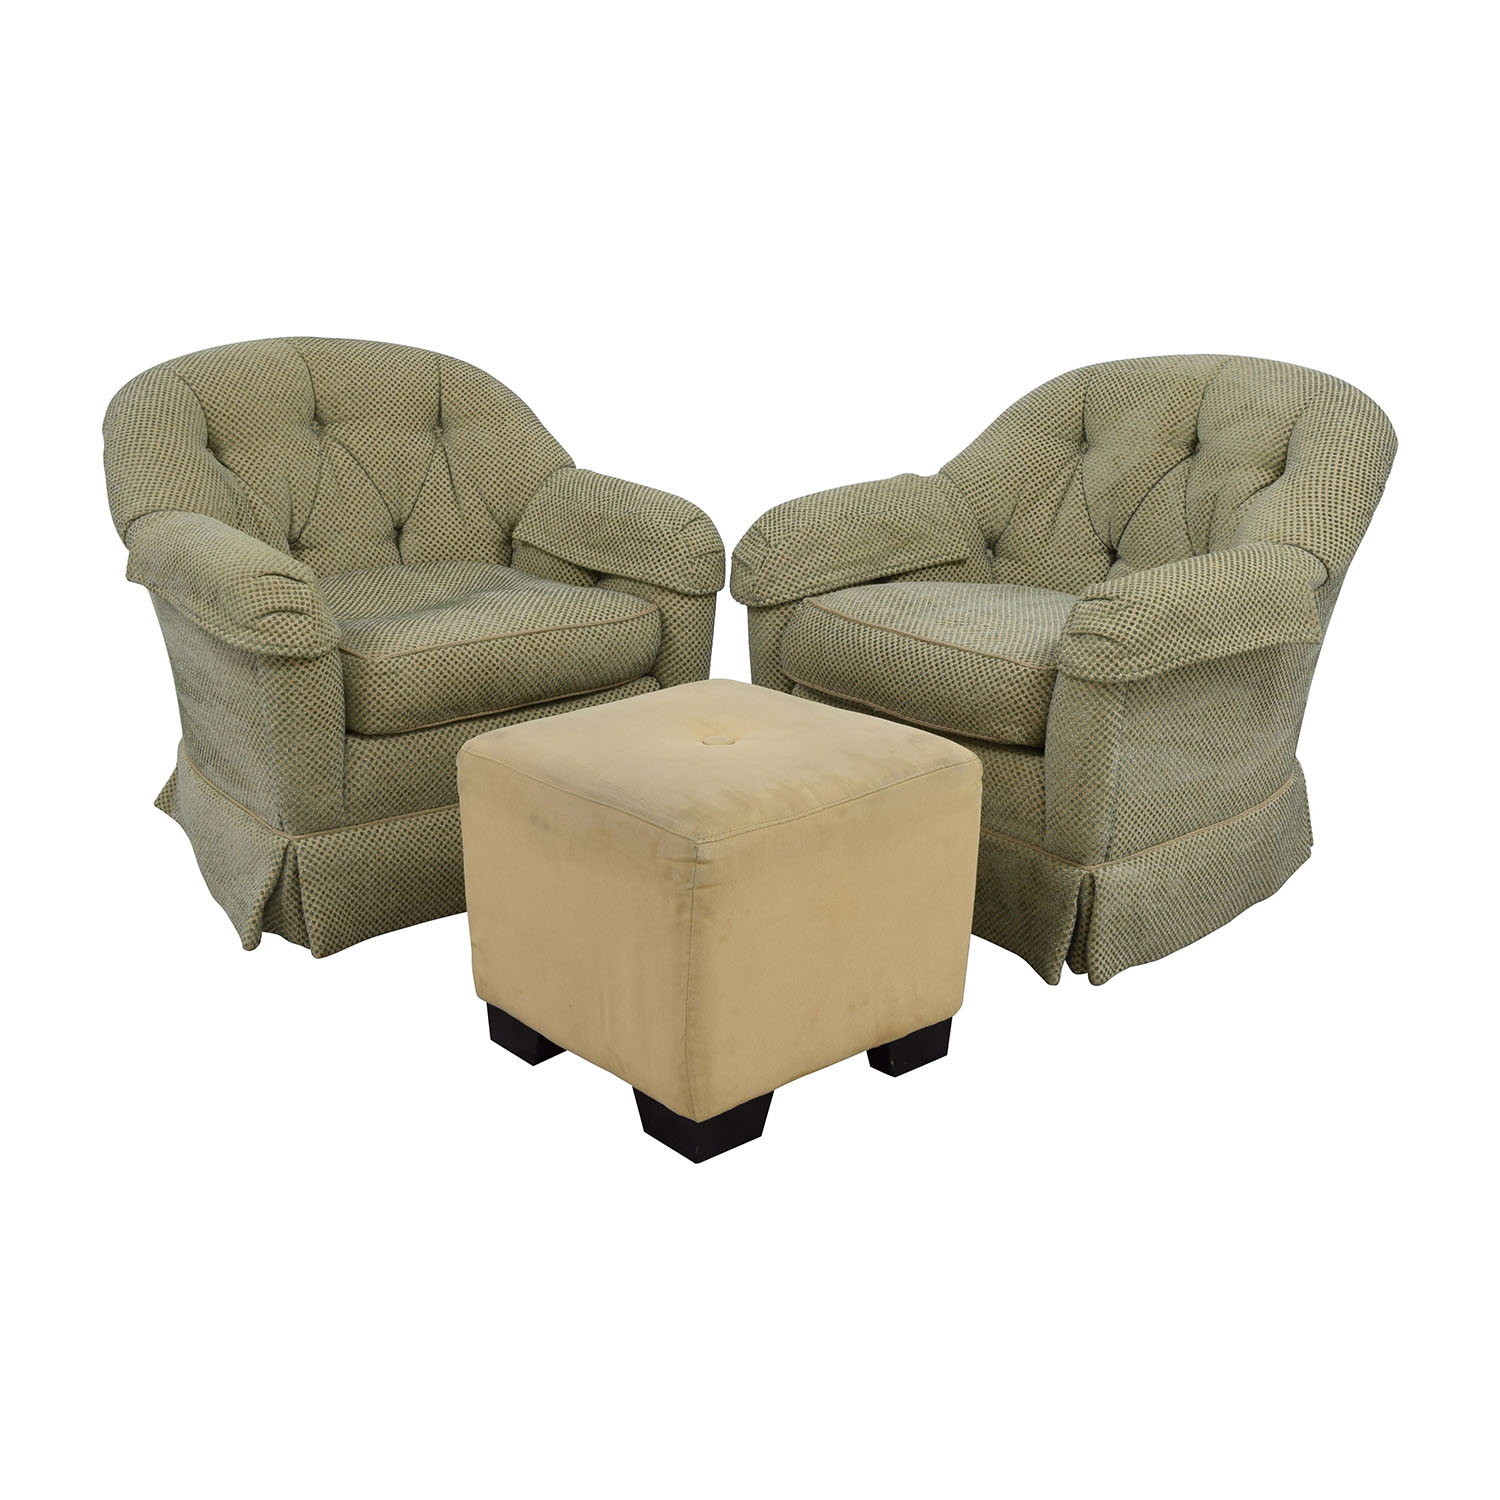 89% OFF Sherrill Furniture Sherrill Furniture Skirted Swivel